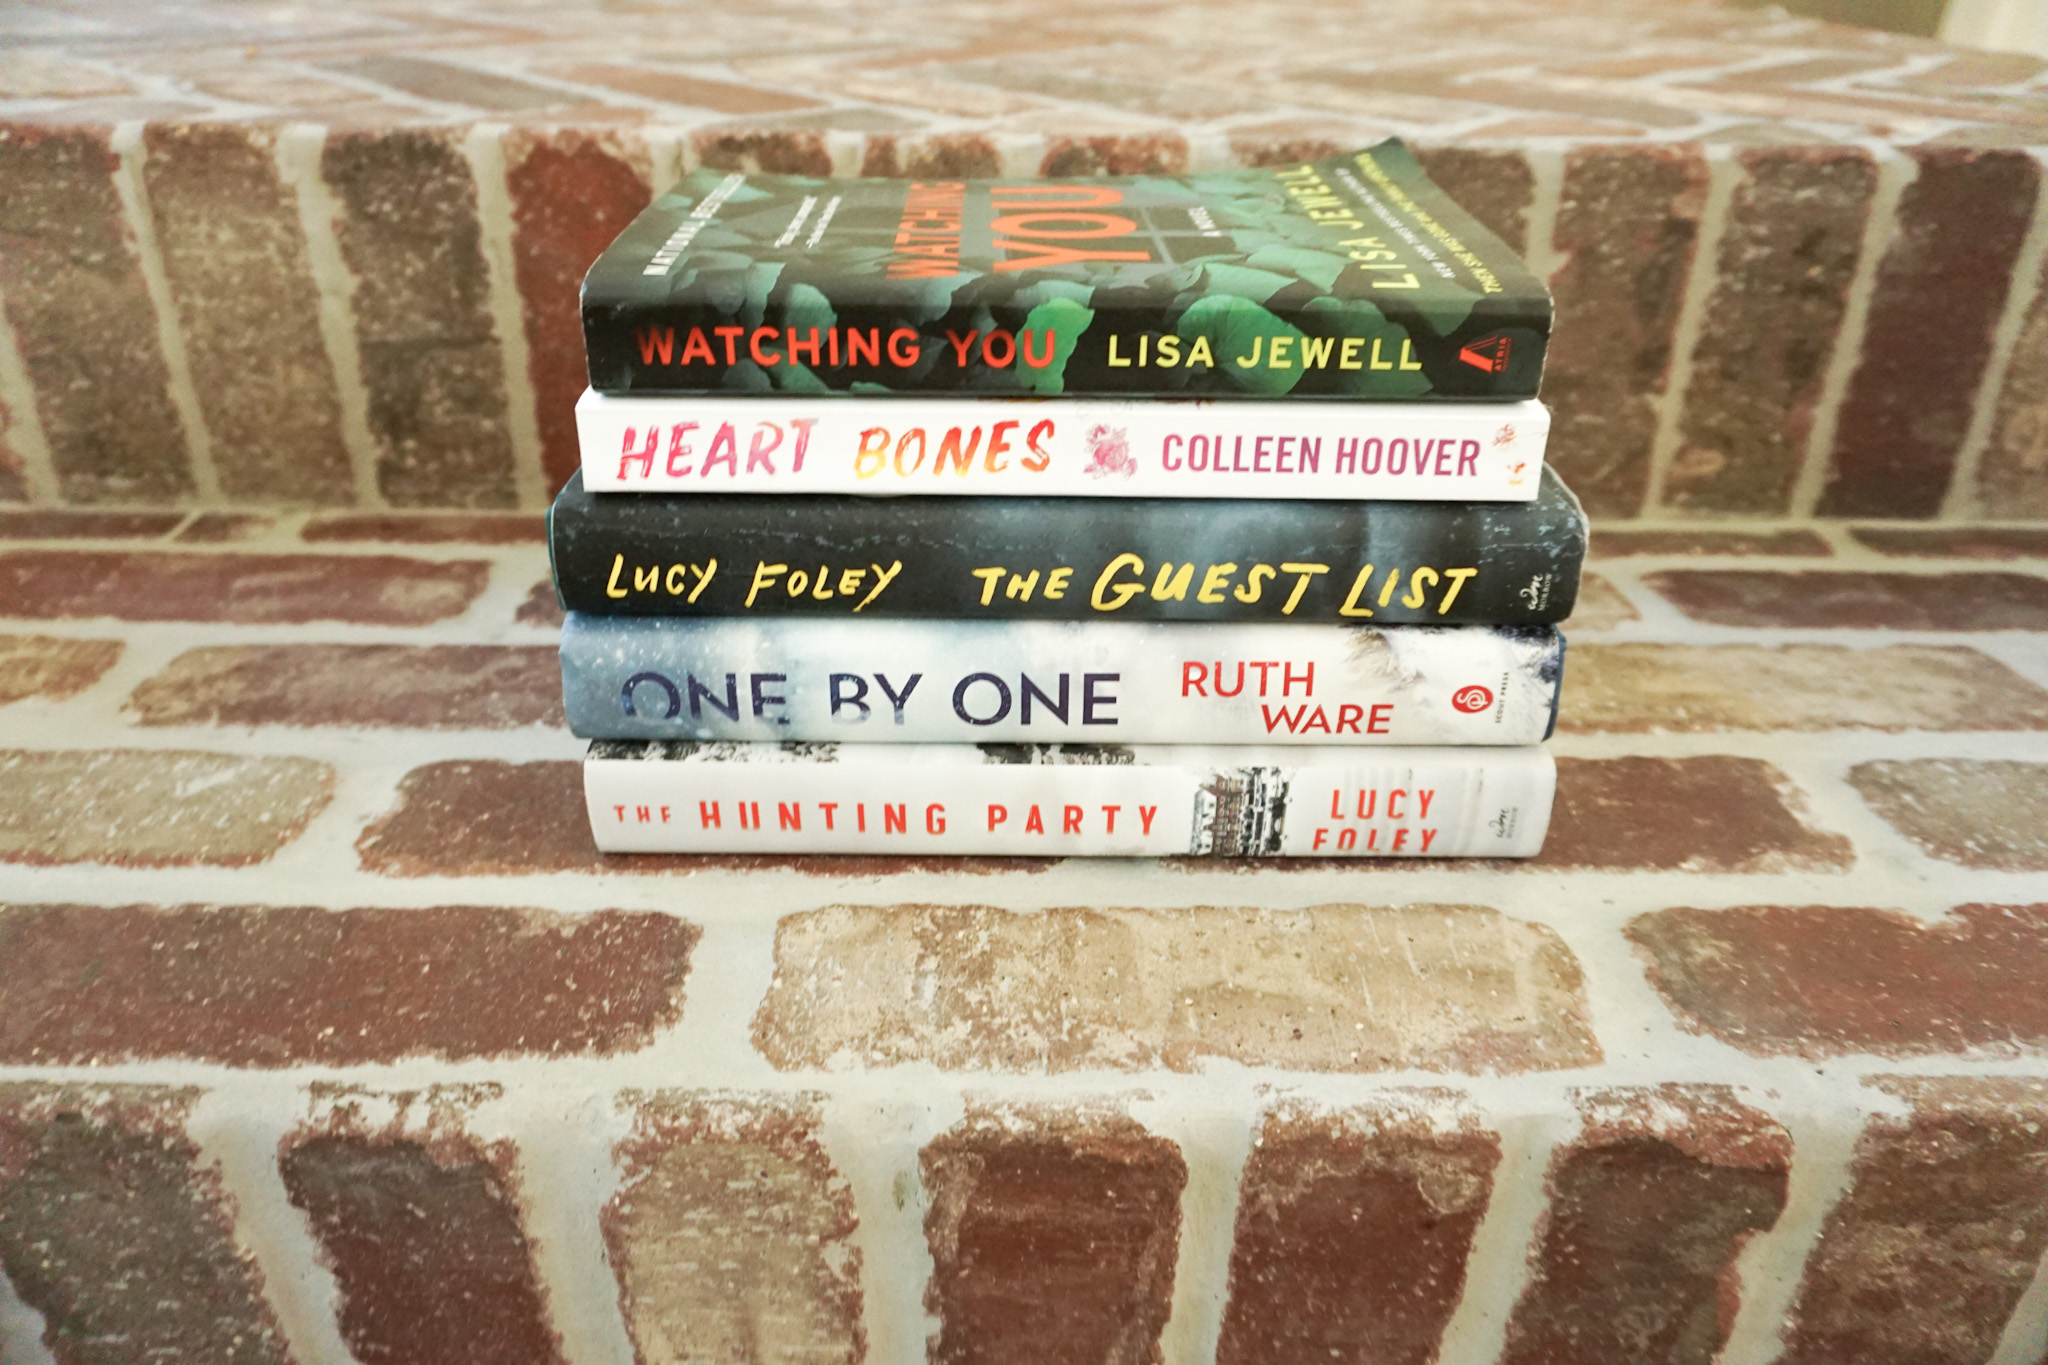 Book Review by popular Houston lifestyle blog, Fancy Ashley: image of the books Watching You, Heart Bones, The Guest List, One By One, and The Hunting Party.